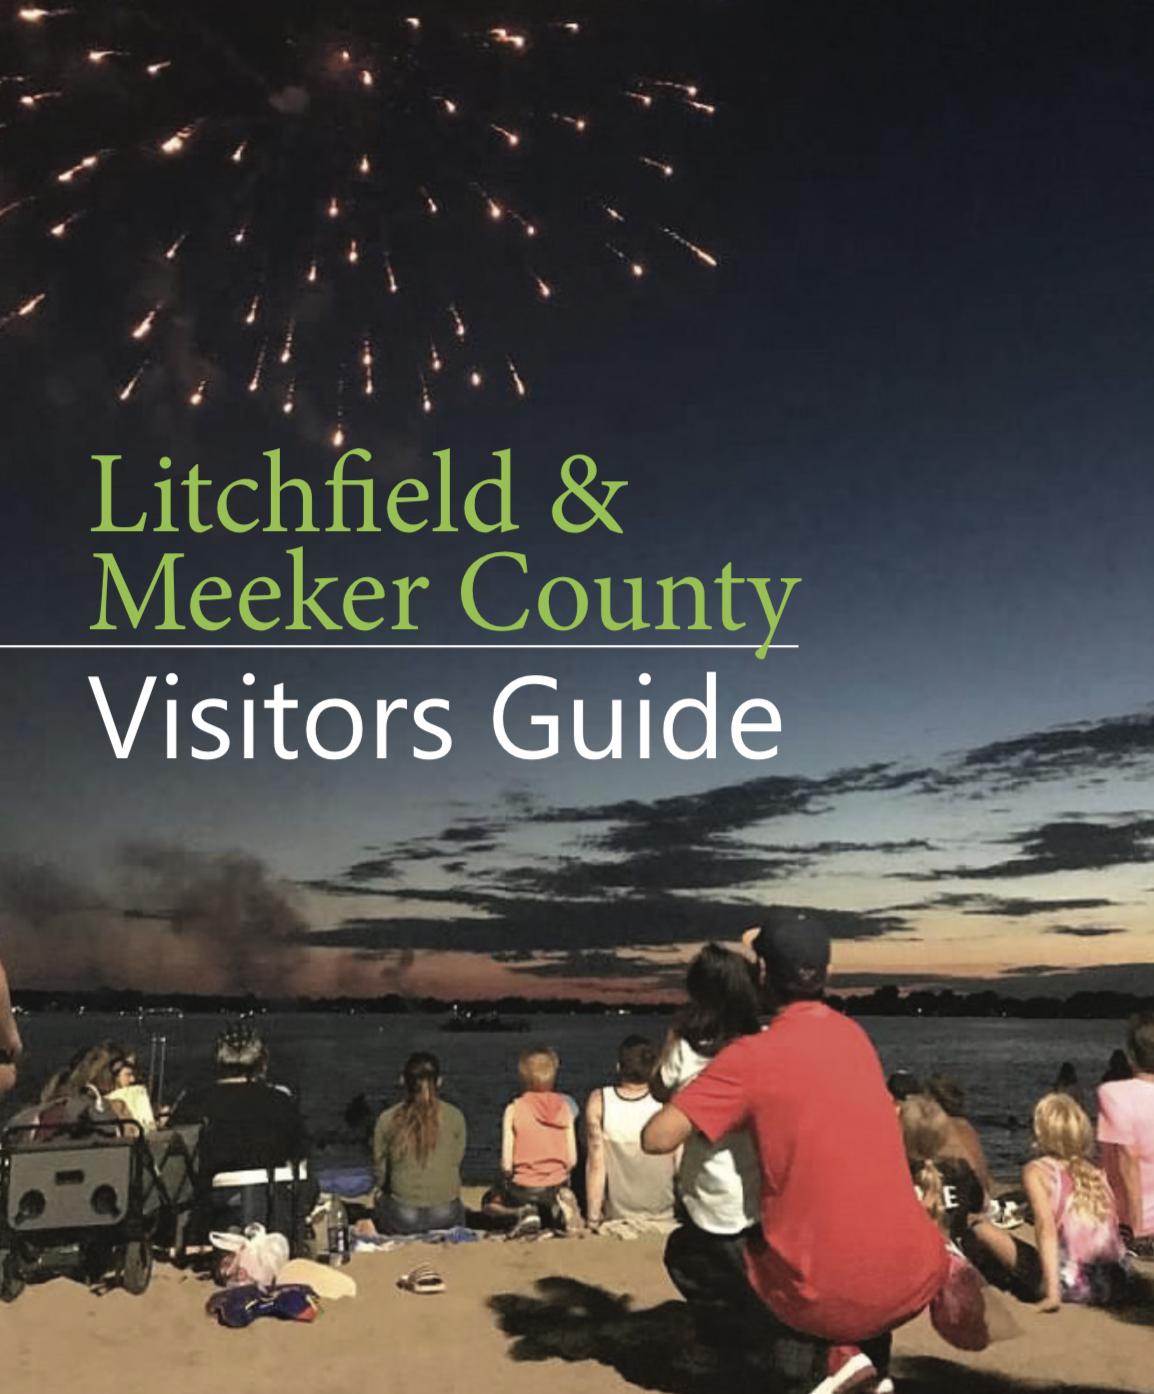 Litchfield & Meeker County Visitors Guide